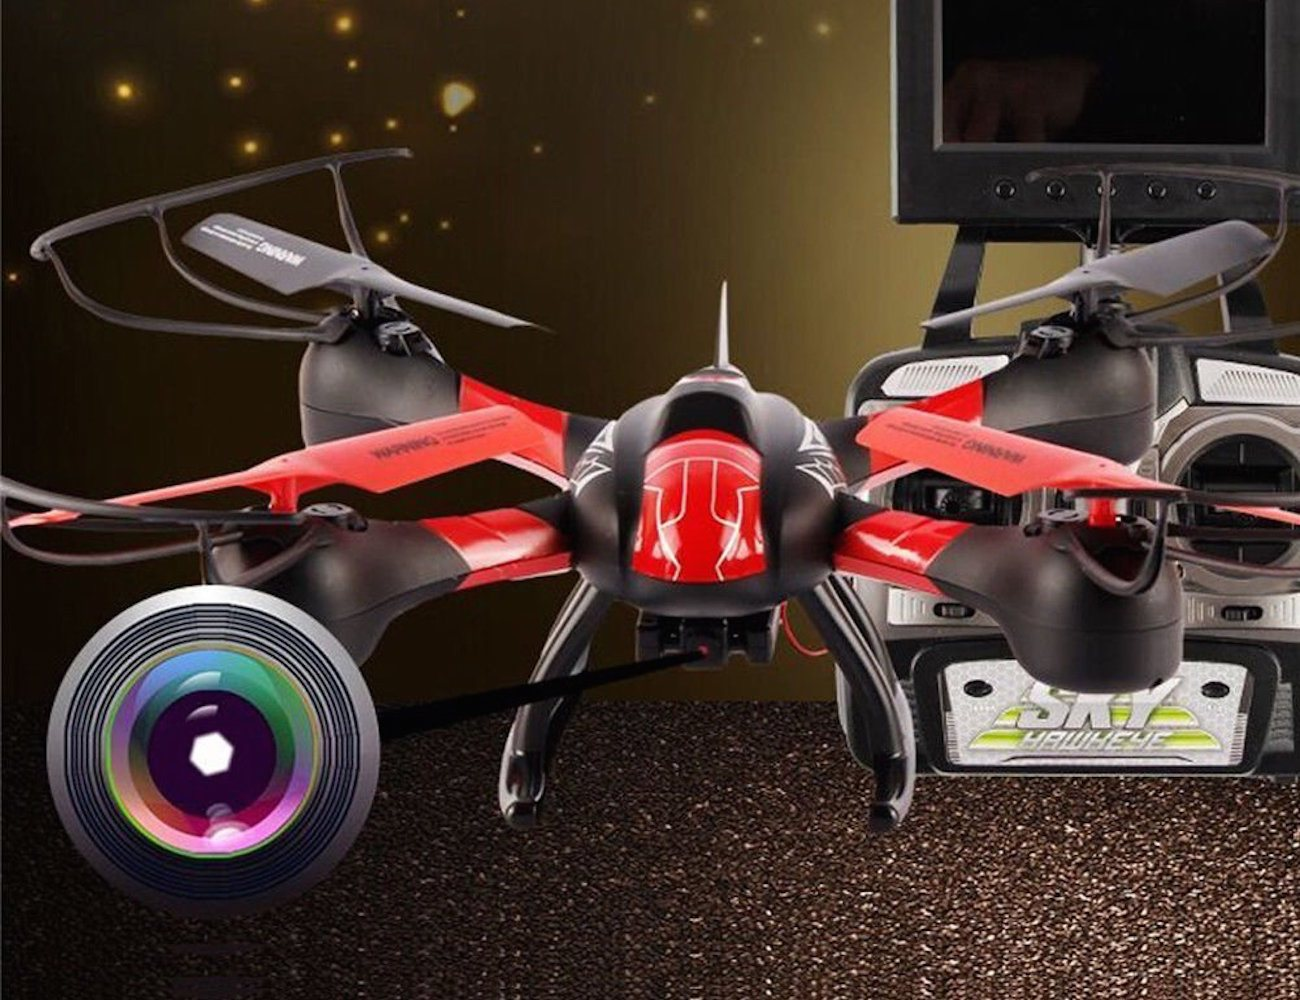 Ology® Drone – With First Person View FPV Live Video Feed